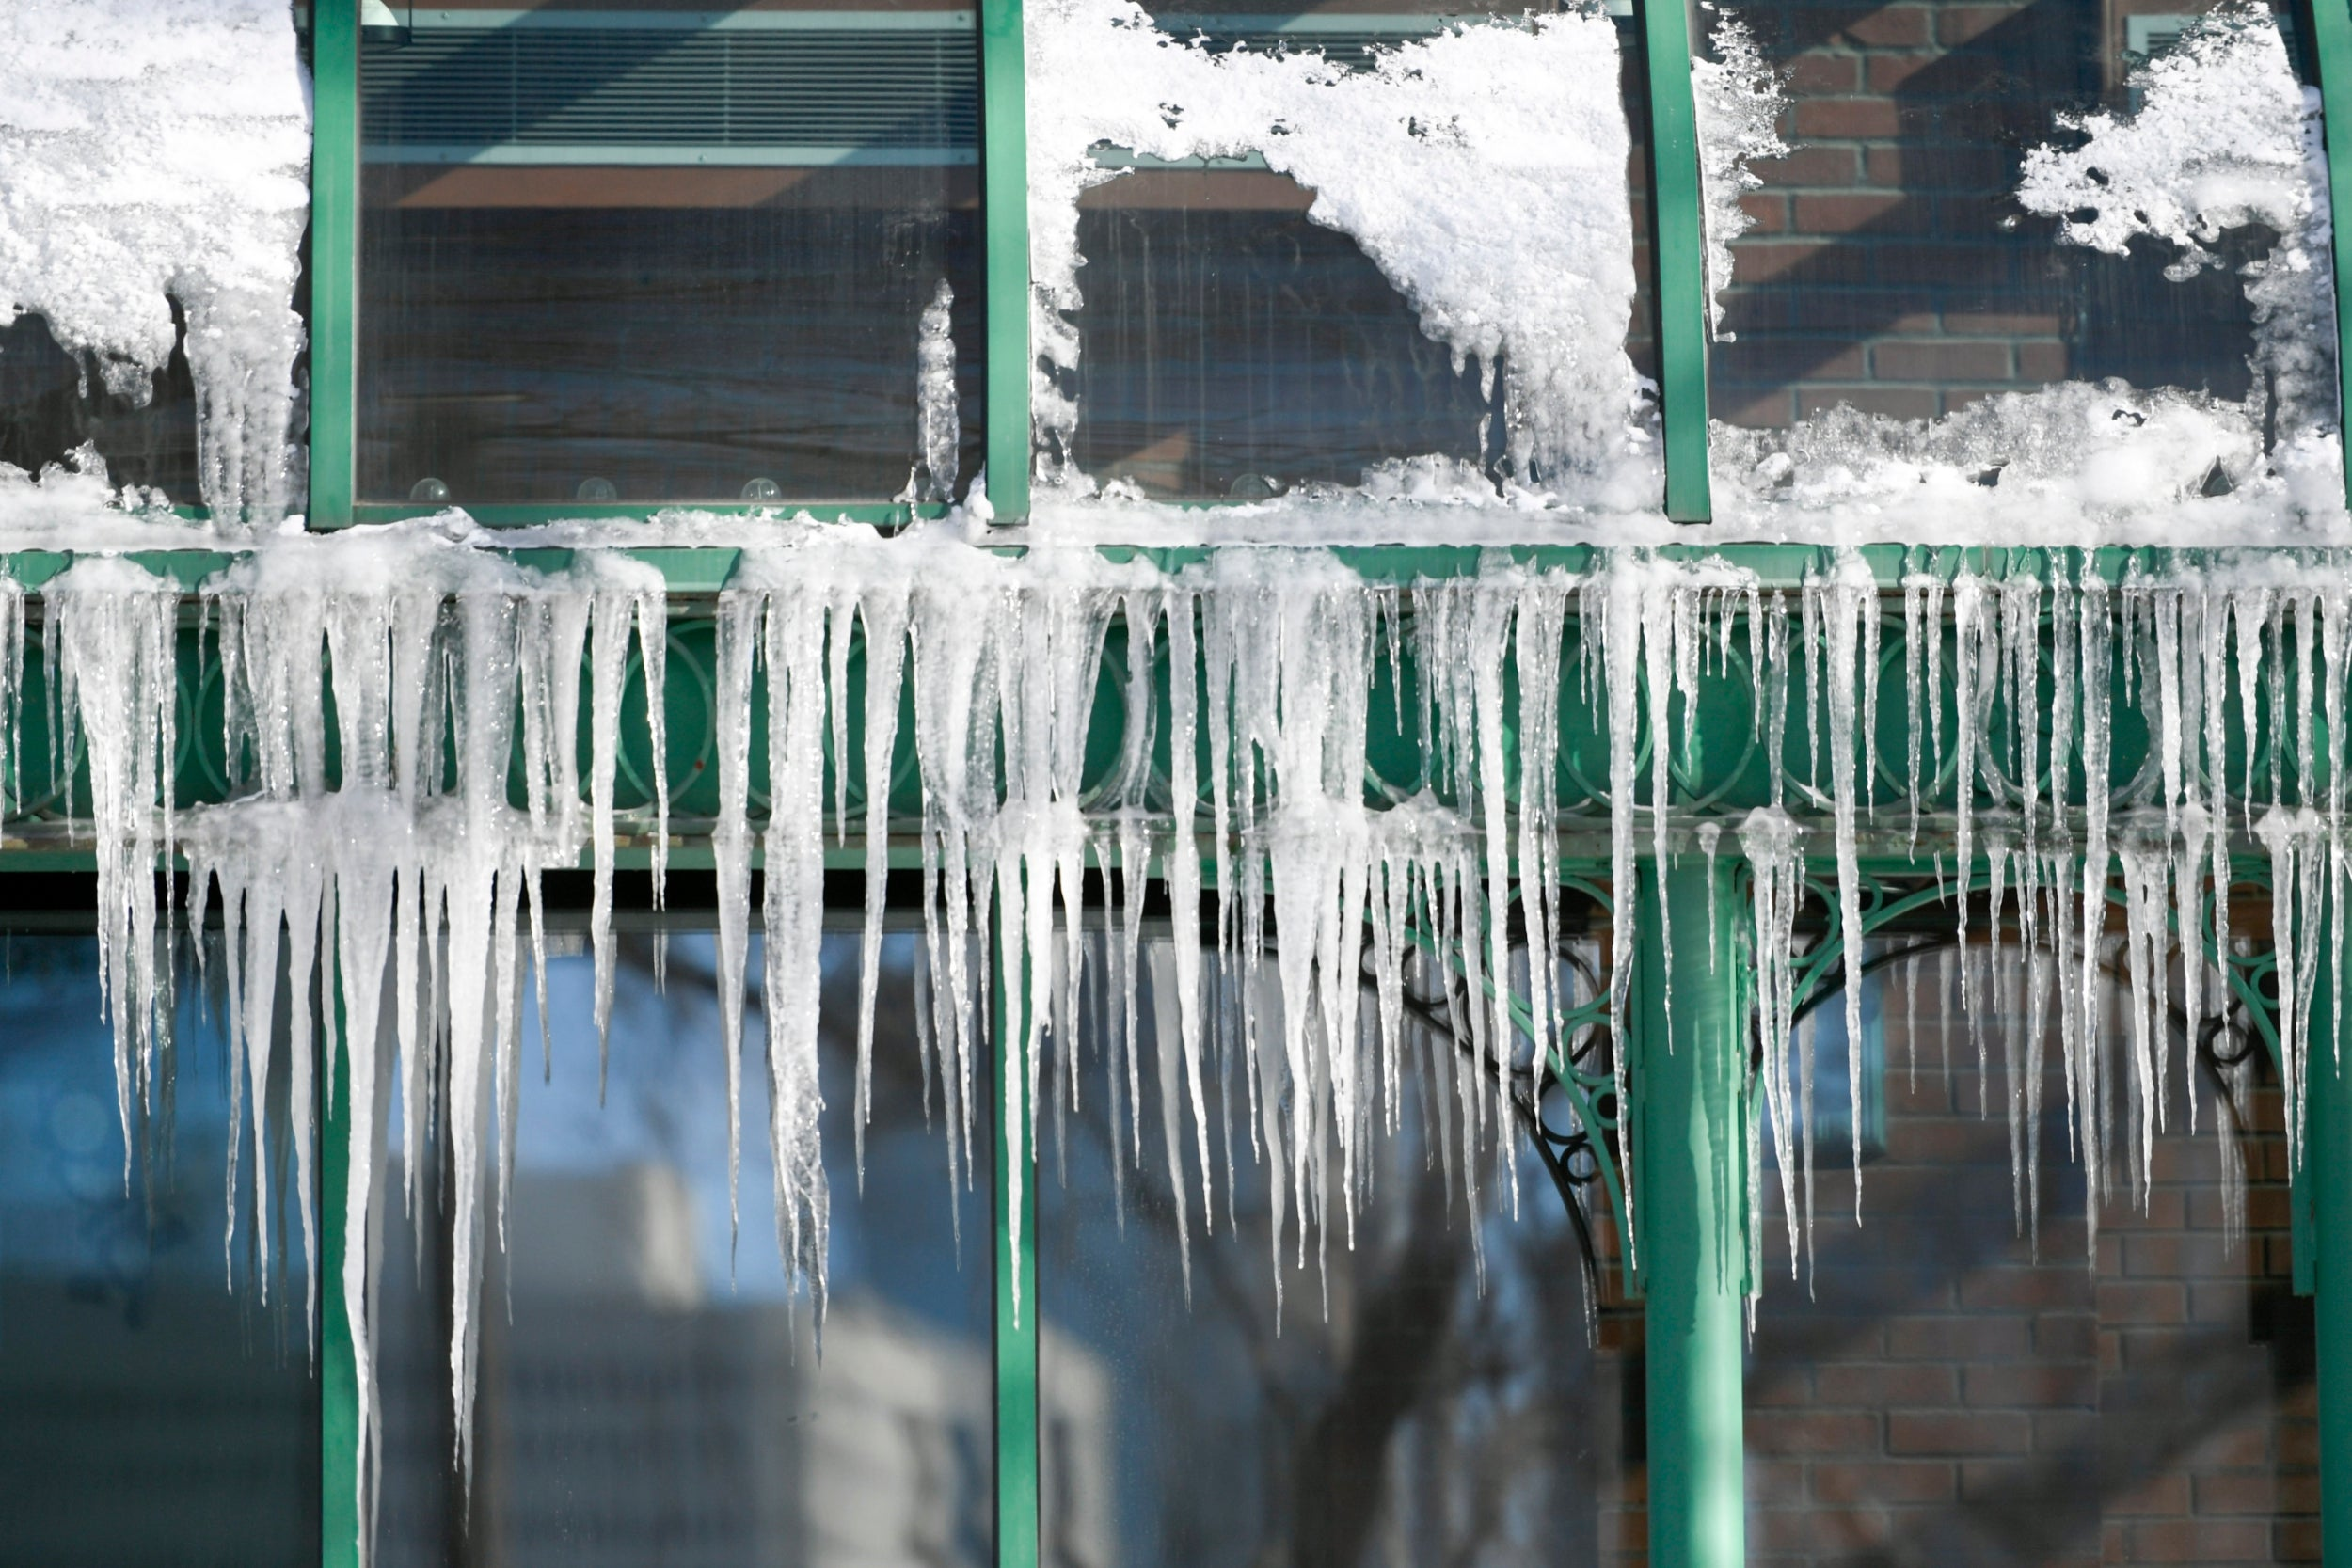 Why does boiling water turn to snow when it's cold? | The